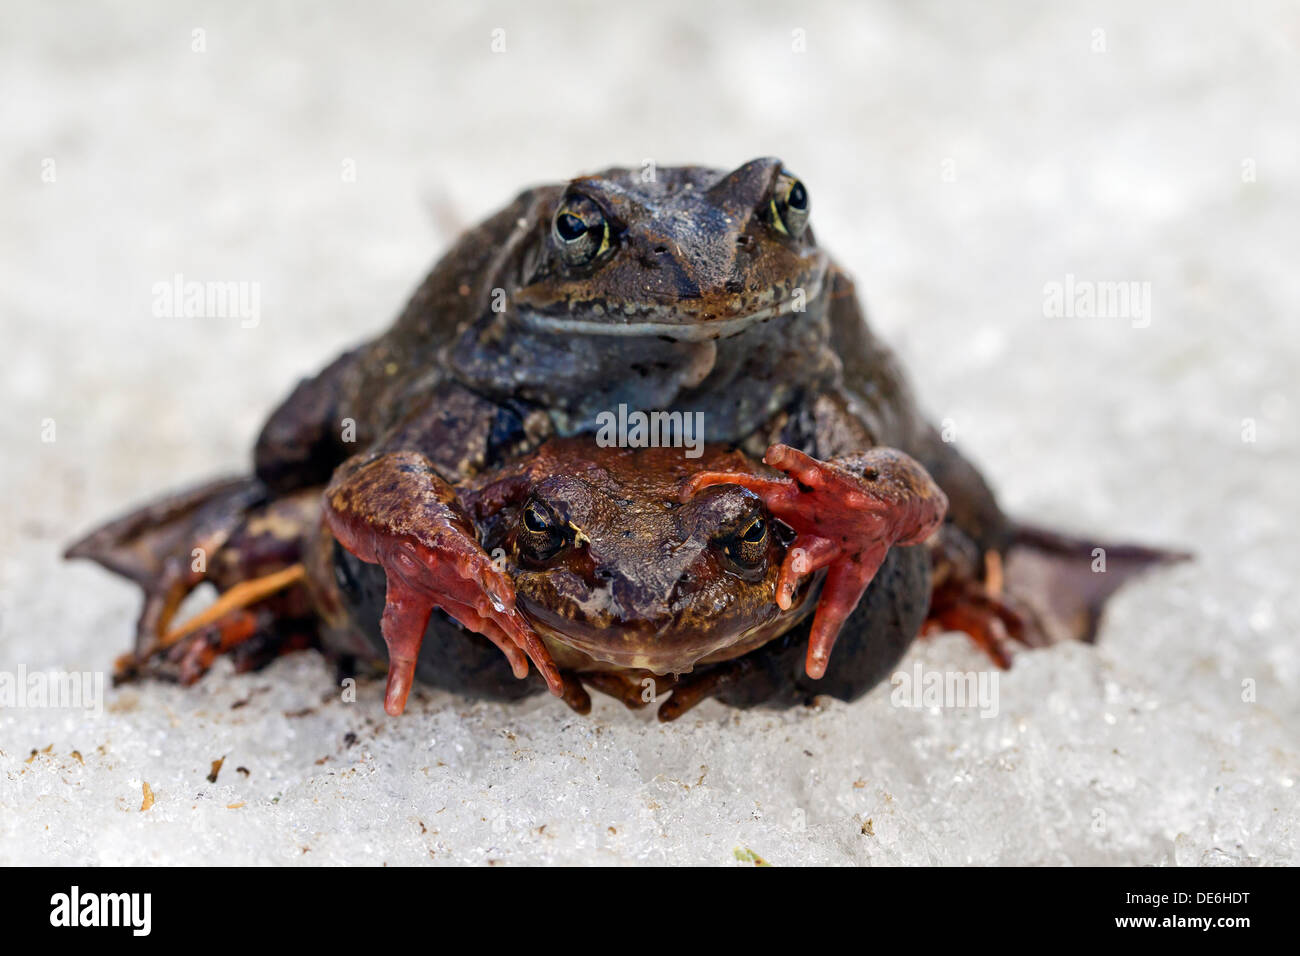 European common brown frogs (Rana temporaria) pair in amplexus migrating to breeding ground in spring in the snow - Stock Image